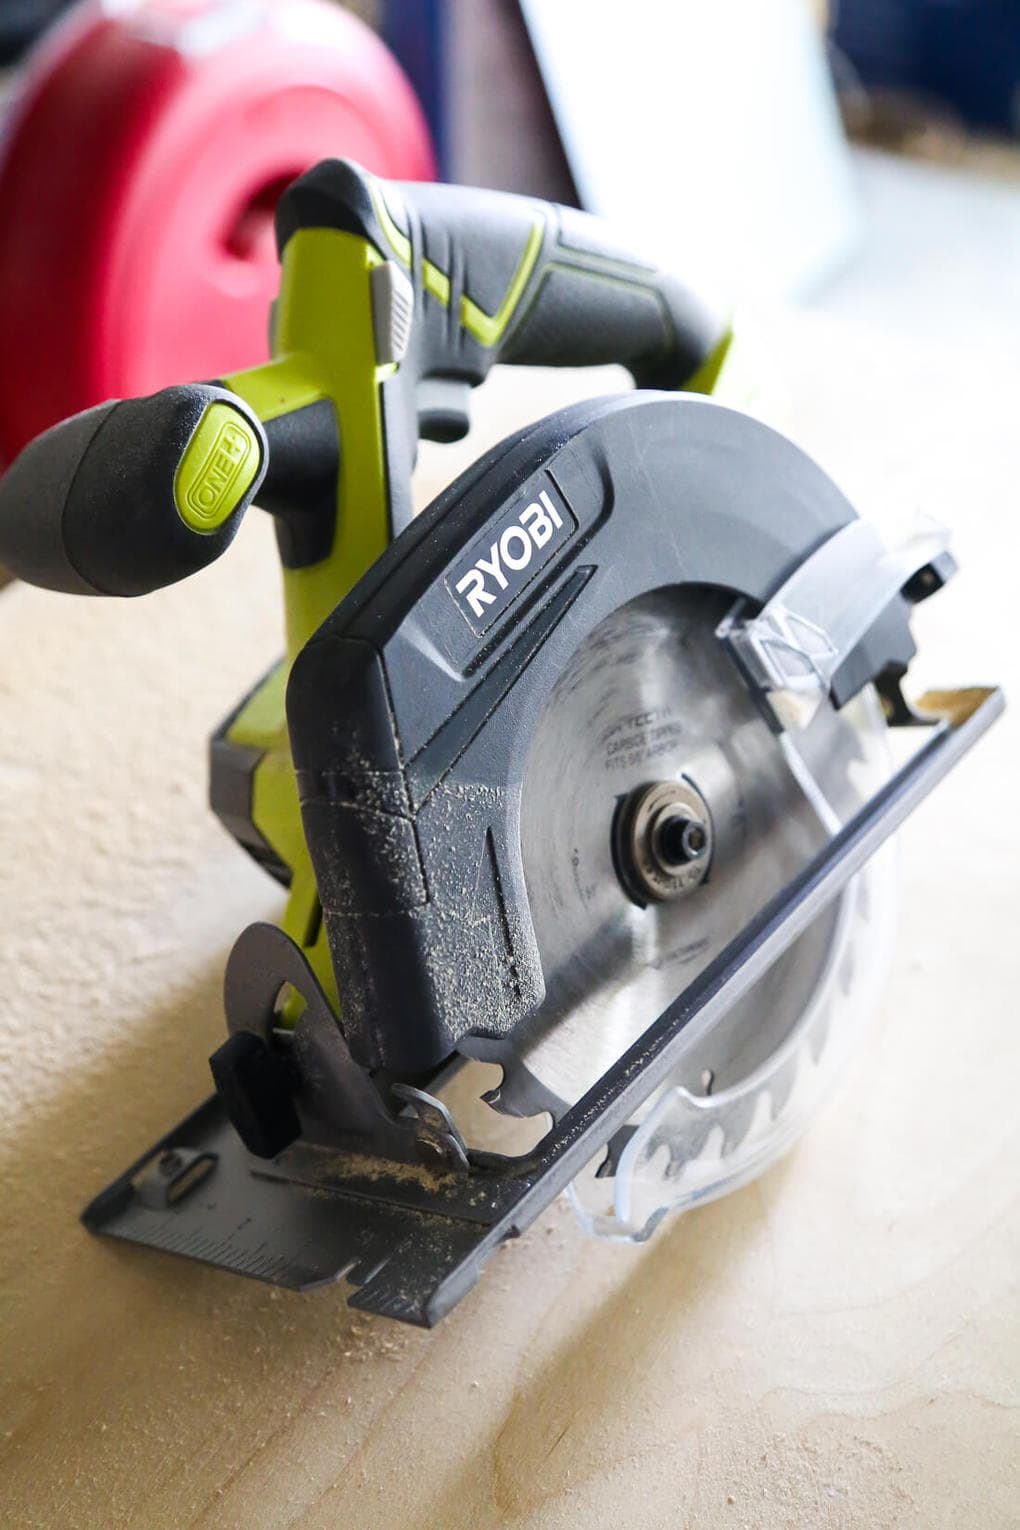 Circular saw - how to use